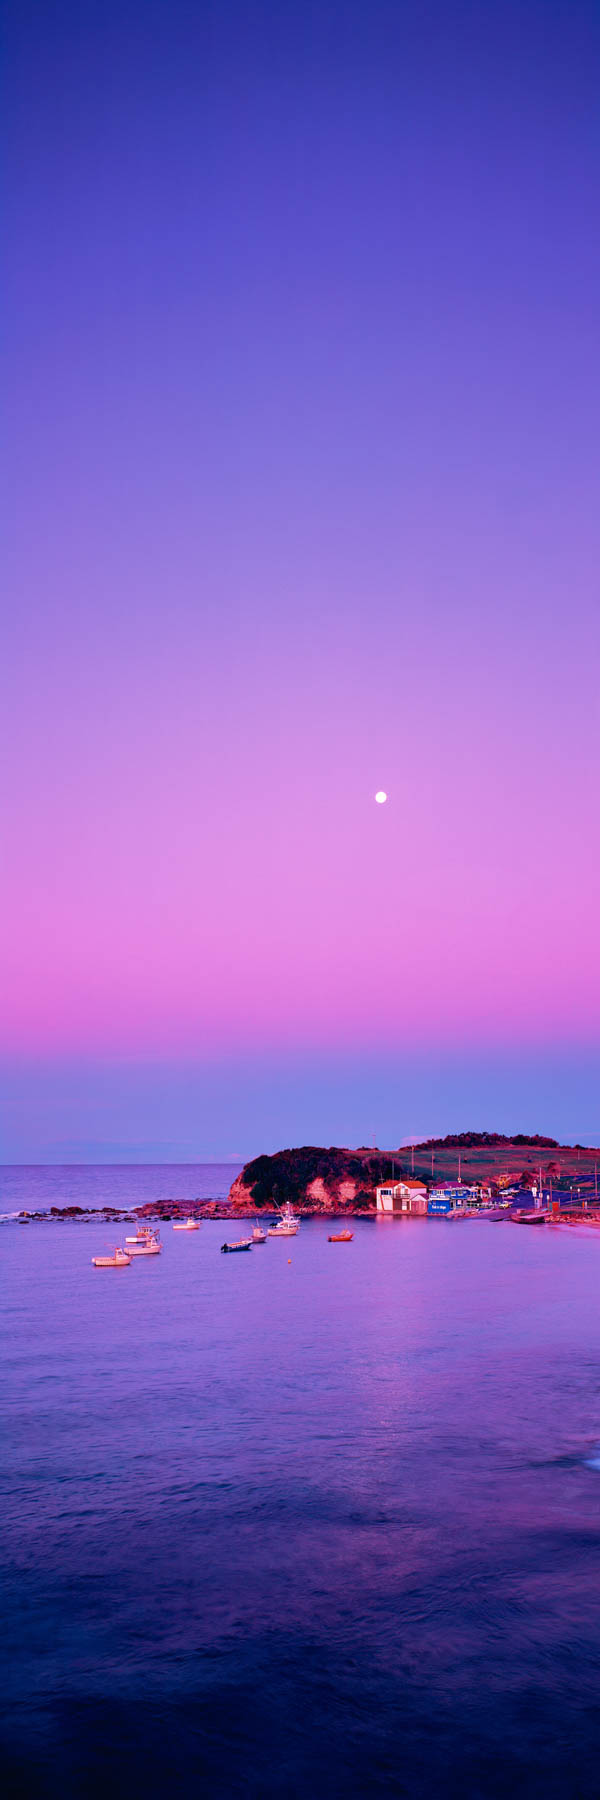 Full moon rising through the pastel twilight over The Haven, Terrigal, NSW, Australia.